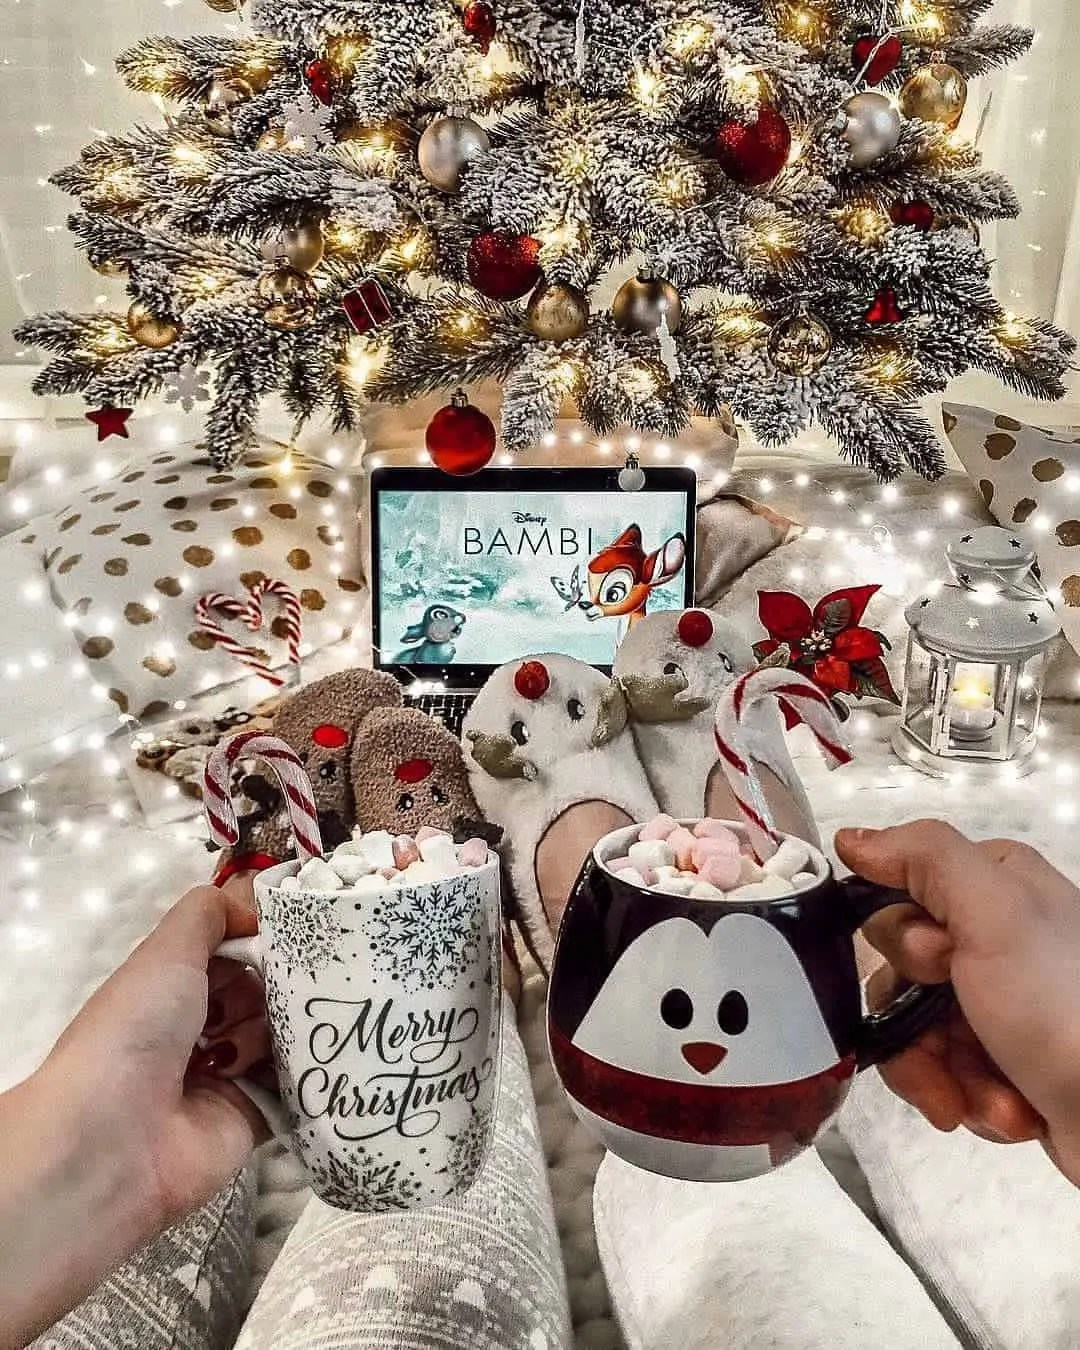 30 Christmas Aesthetic Images you must see: WARNING you will get Christmas mood INSTANTLY! 77